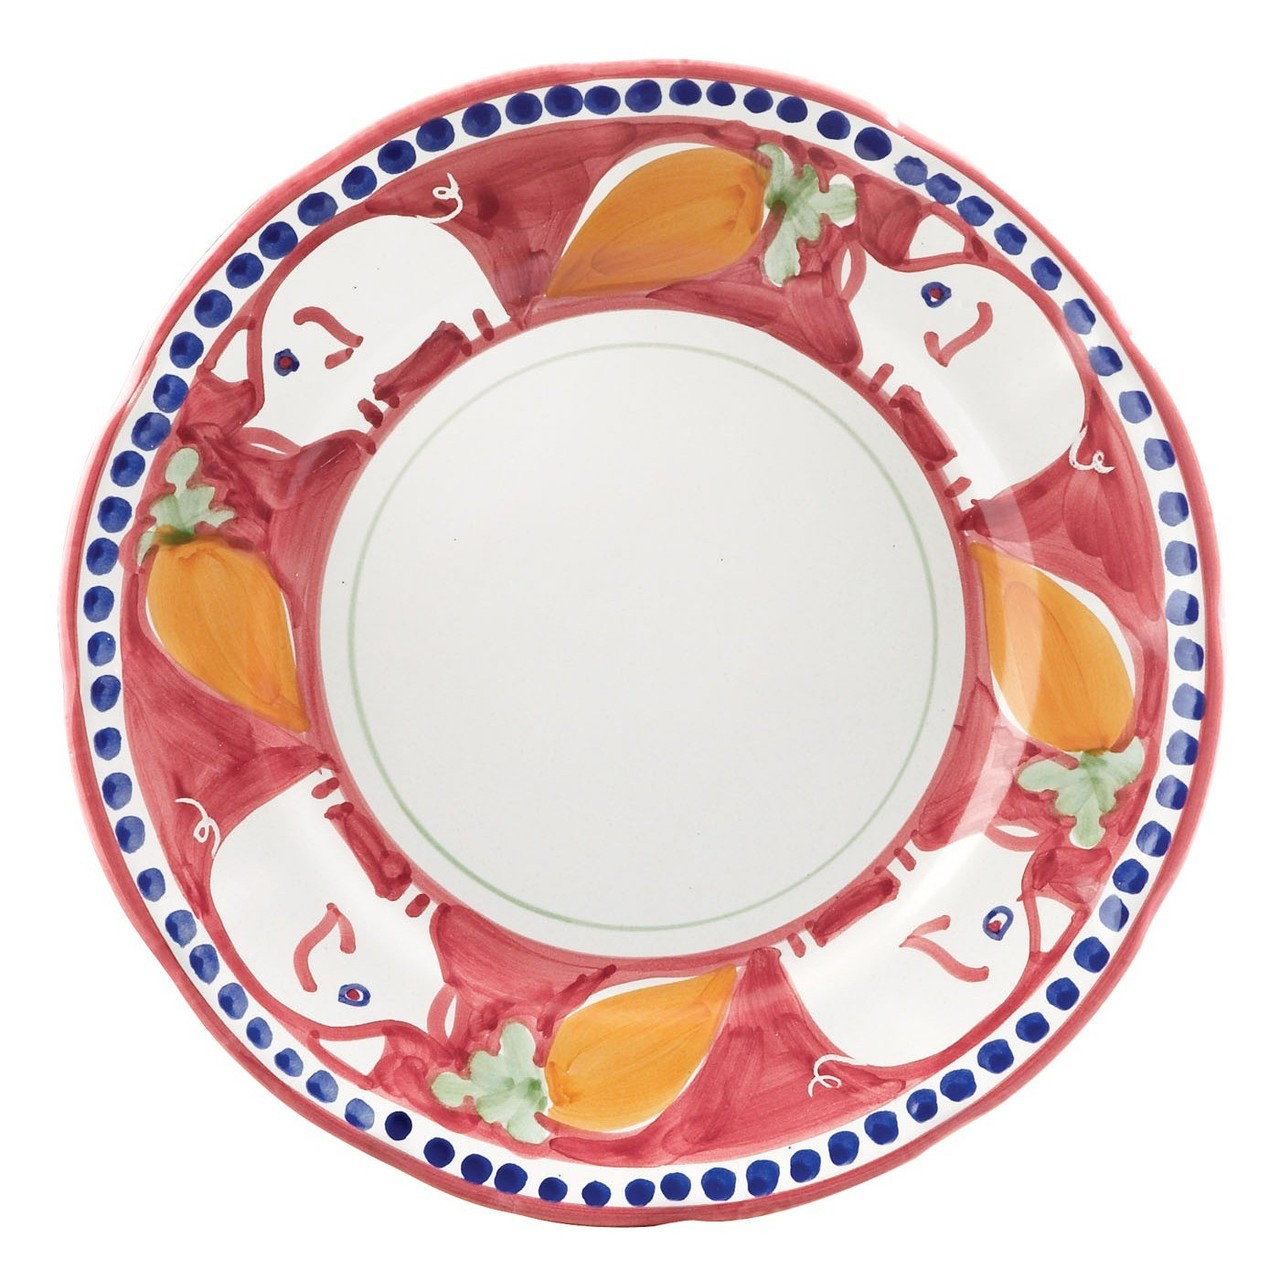 The colorful Vietri Solimene C&agna Porco Dinner Plate features whimsical handpainted pigs and carrots. Made  sc 1 st  Plum Pudding & Vietri Solimene Campagna Porco Dinner Plate